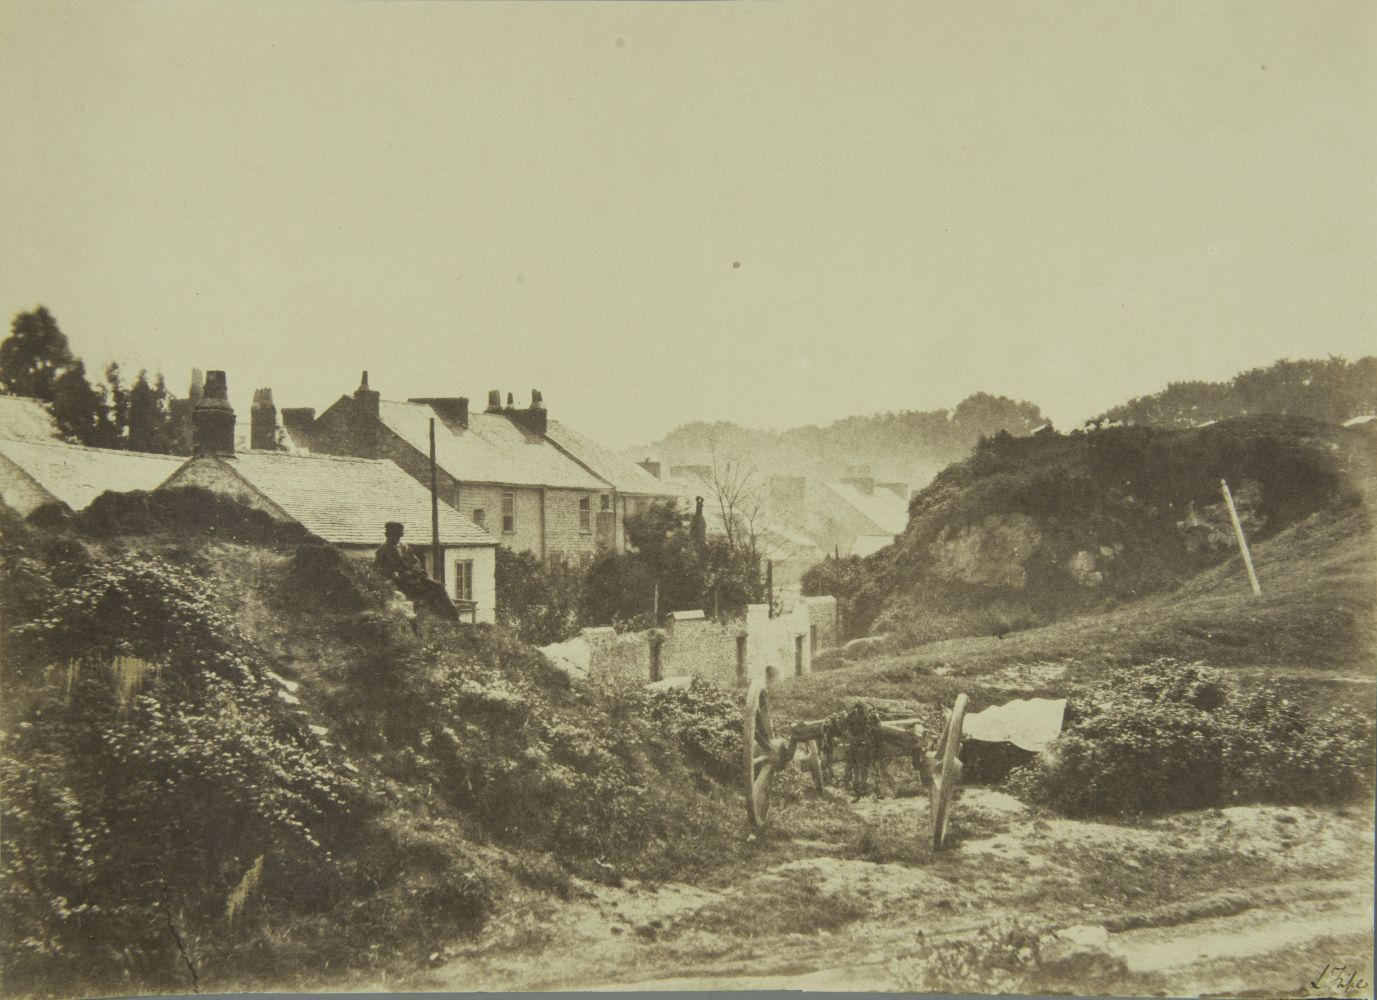 "Captain Linnaeus TRIPE (English, 1822-1902) Devonport, Richmond Walk, England*, 1852-1854 Albumenized salt print from a waxed paper negative 23.9 x 33.4 cm mounted flush on card Signed ""L. Tripe"" in ink"